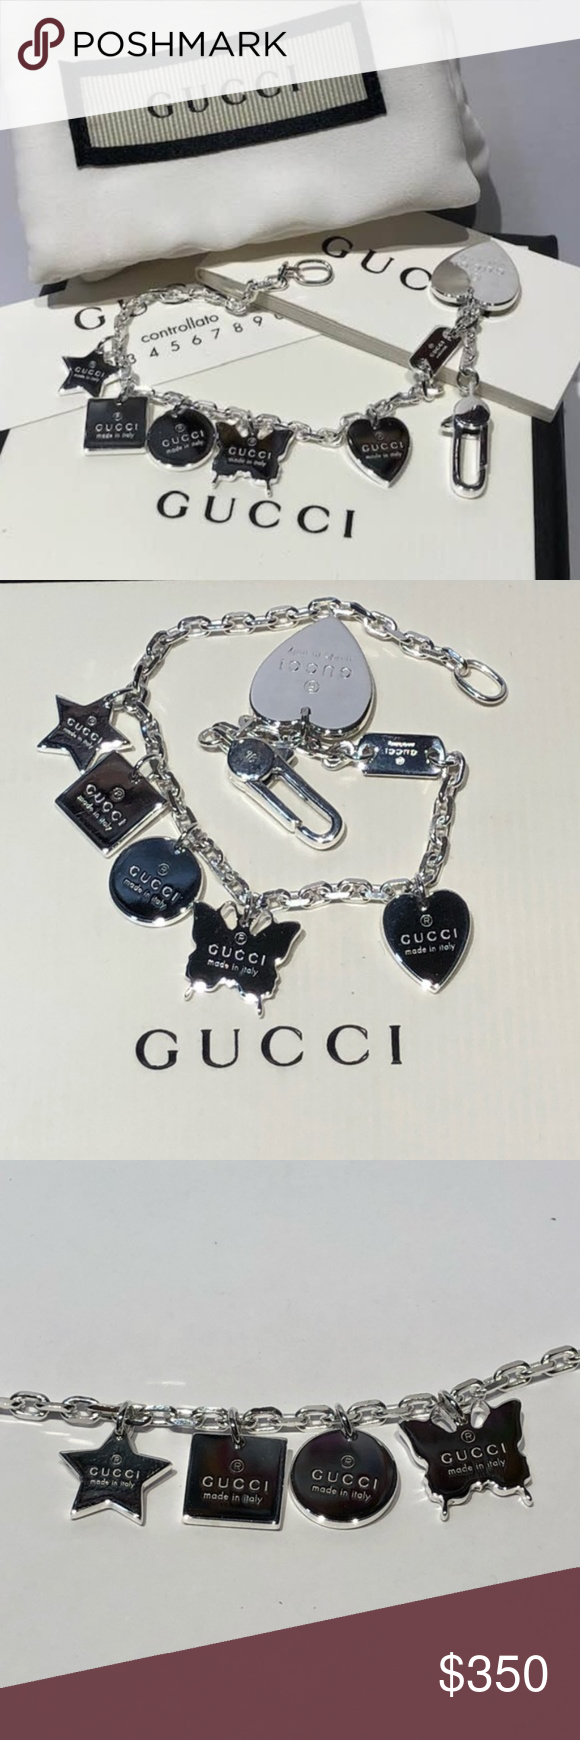 008089be6 NWT GUCCI Sterling Silver Trademark Charm Bracelet 6.5in long bracelet with  6 charms boxed, pouch included sterling silver lobster claw closure  imported, ...